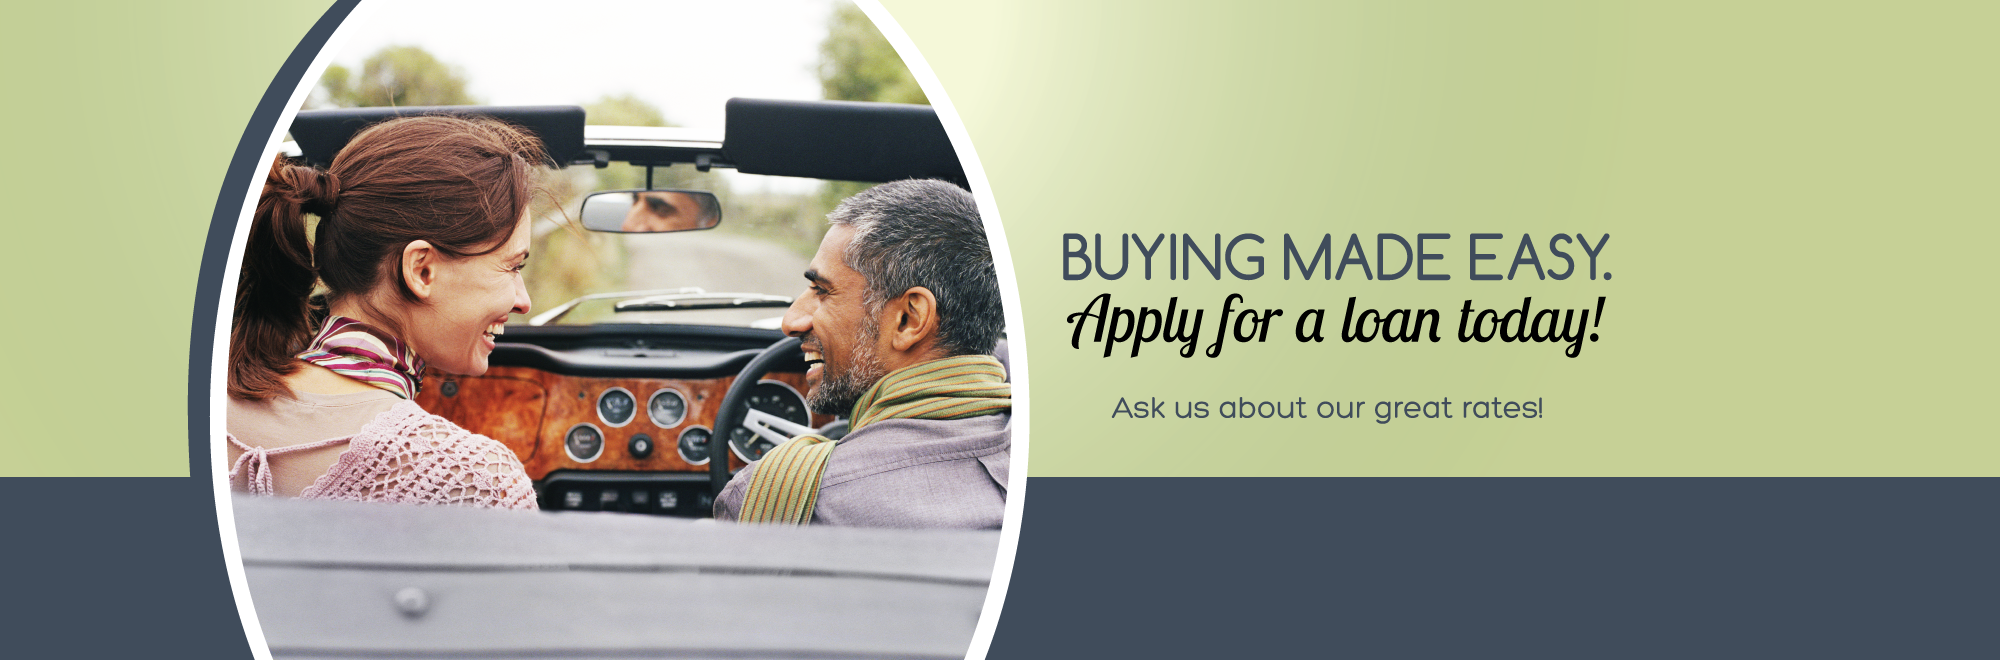 Buying Made Easy, Apply for a Loan Today!